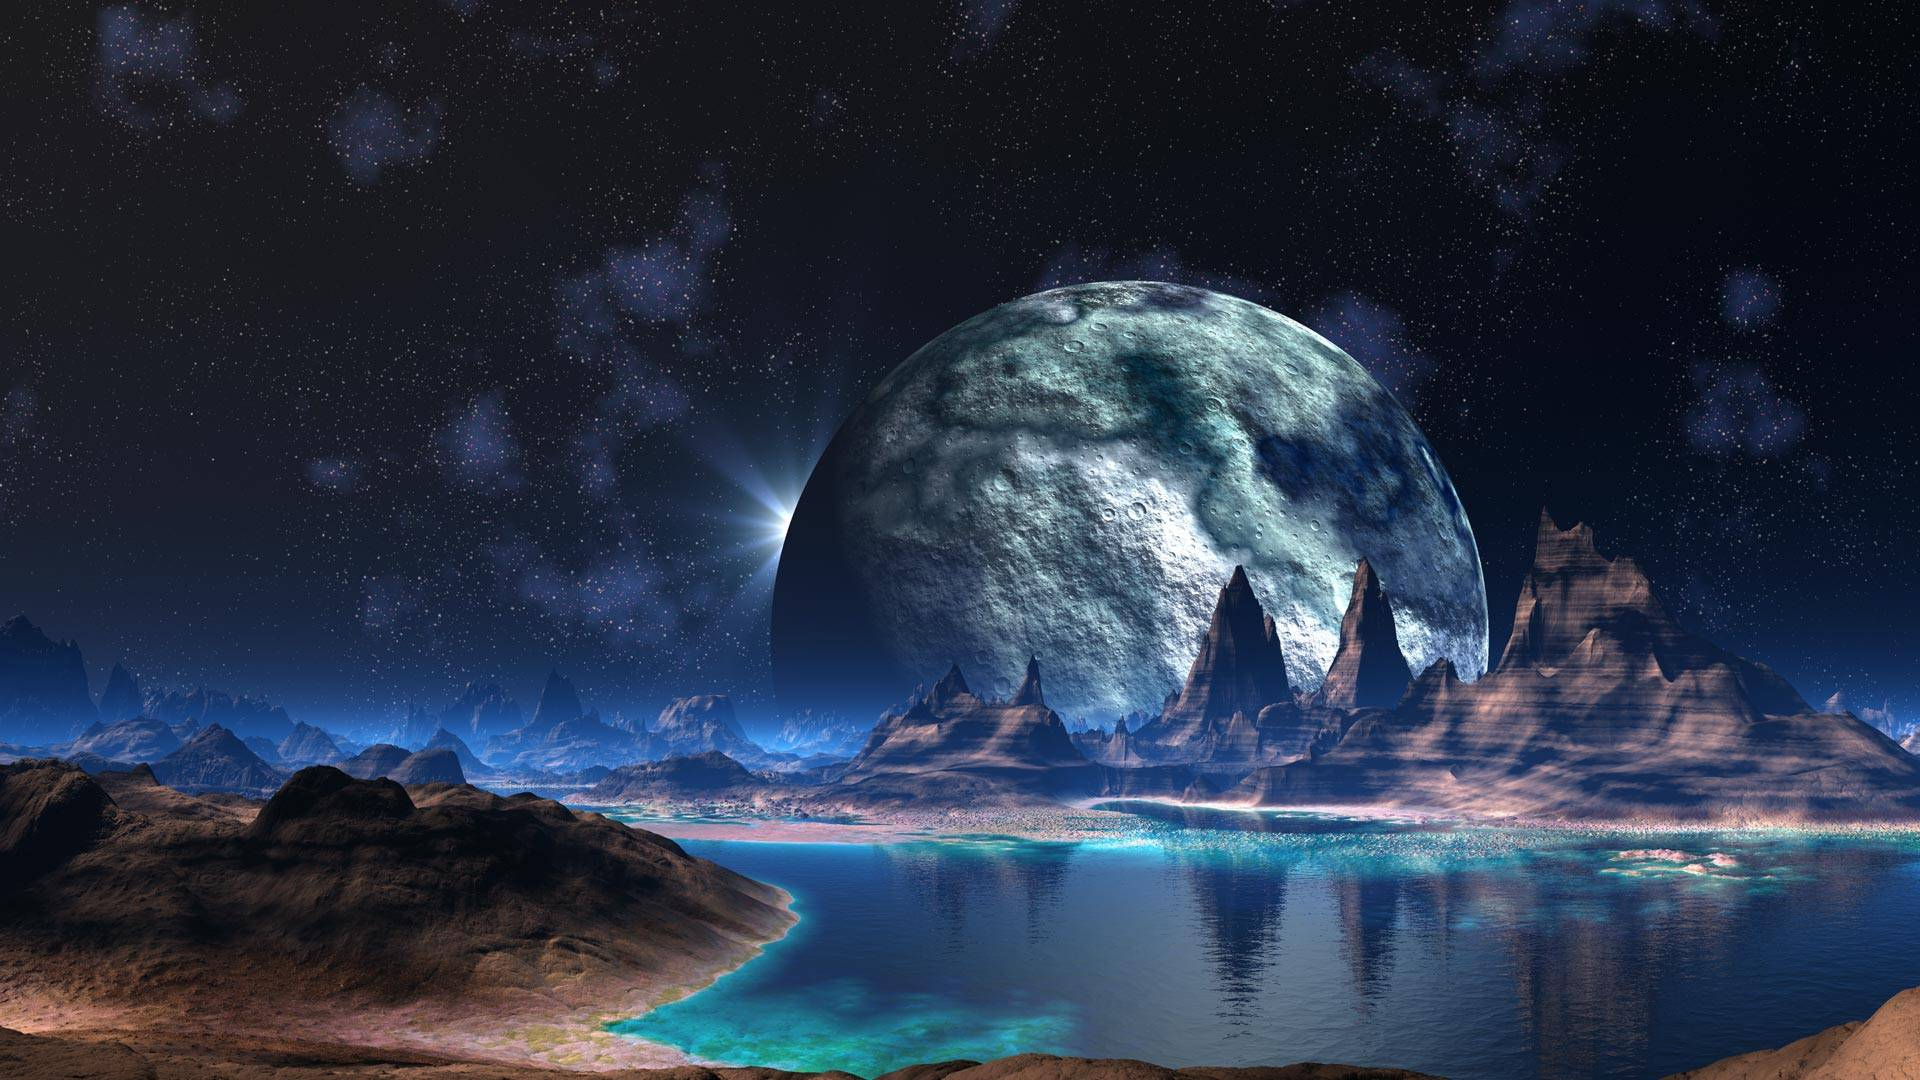 ... Stars Lake sci-fi space reflection mountains wallpaper background